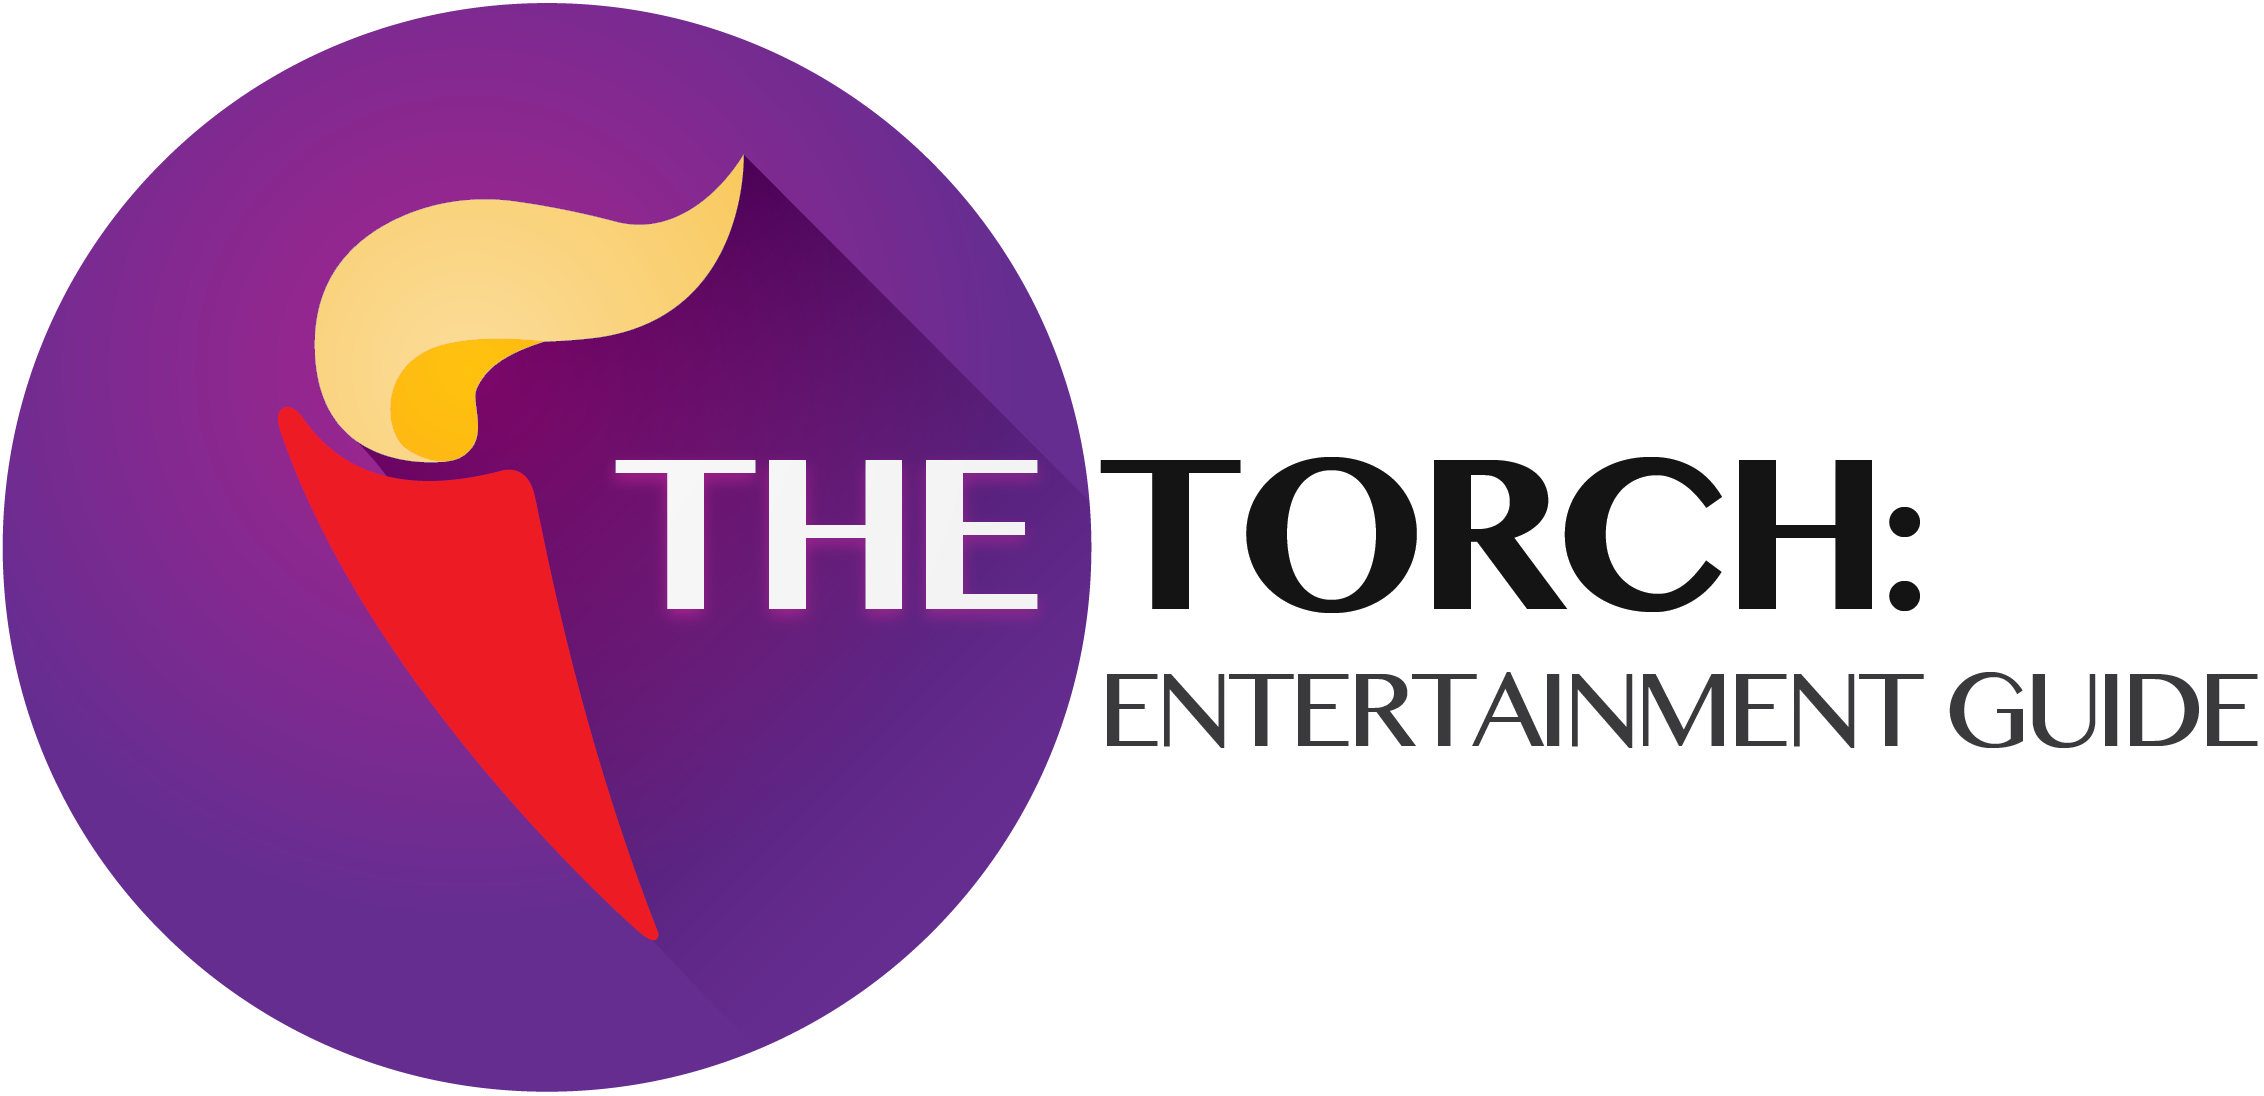 The Torch Entertainment Guide